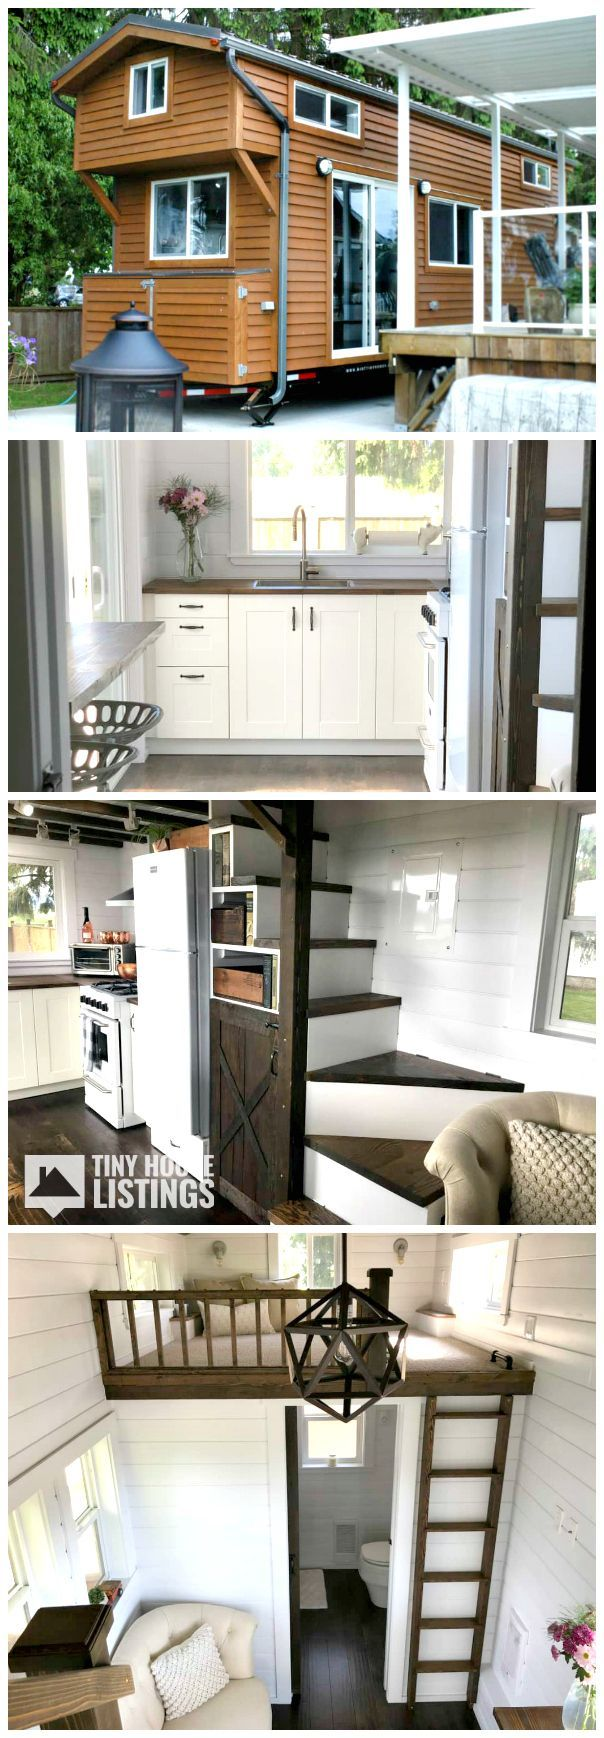 Tiny Home Tiny House For Sale In Delta British Columbia